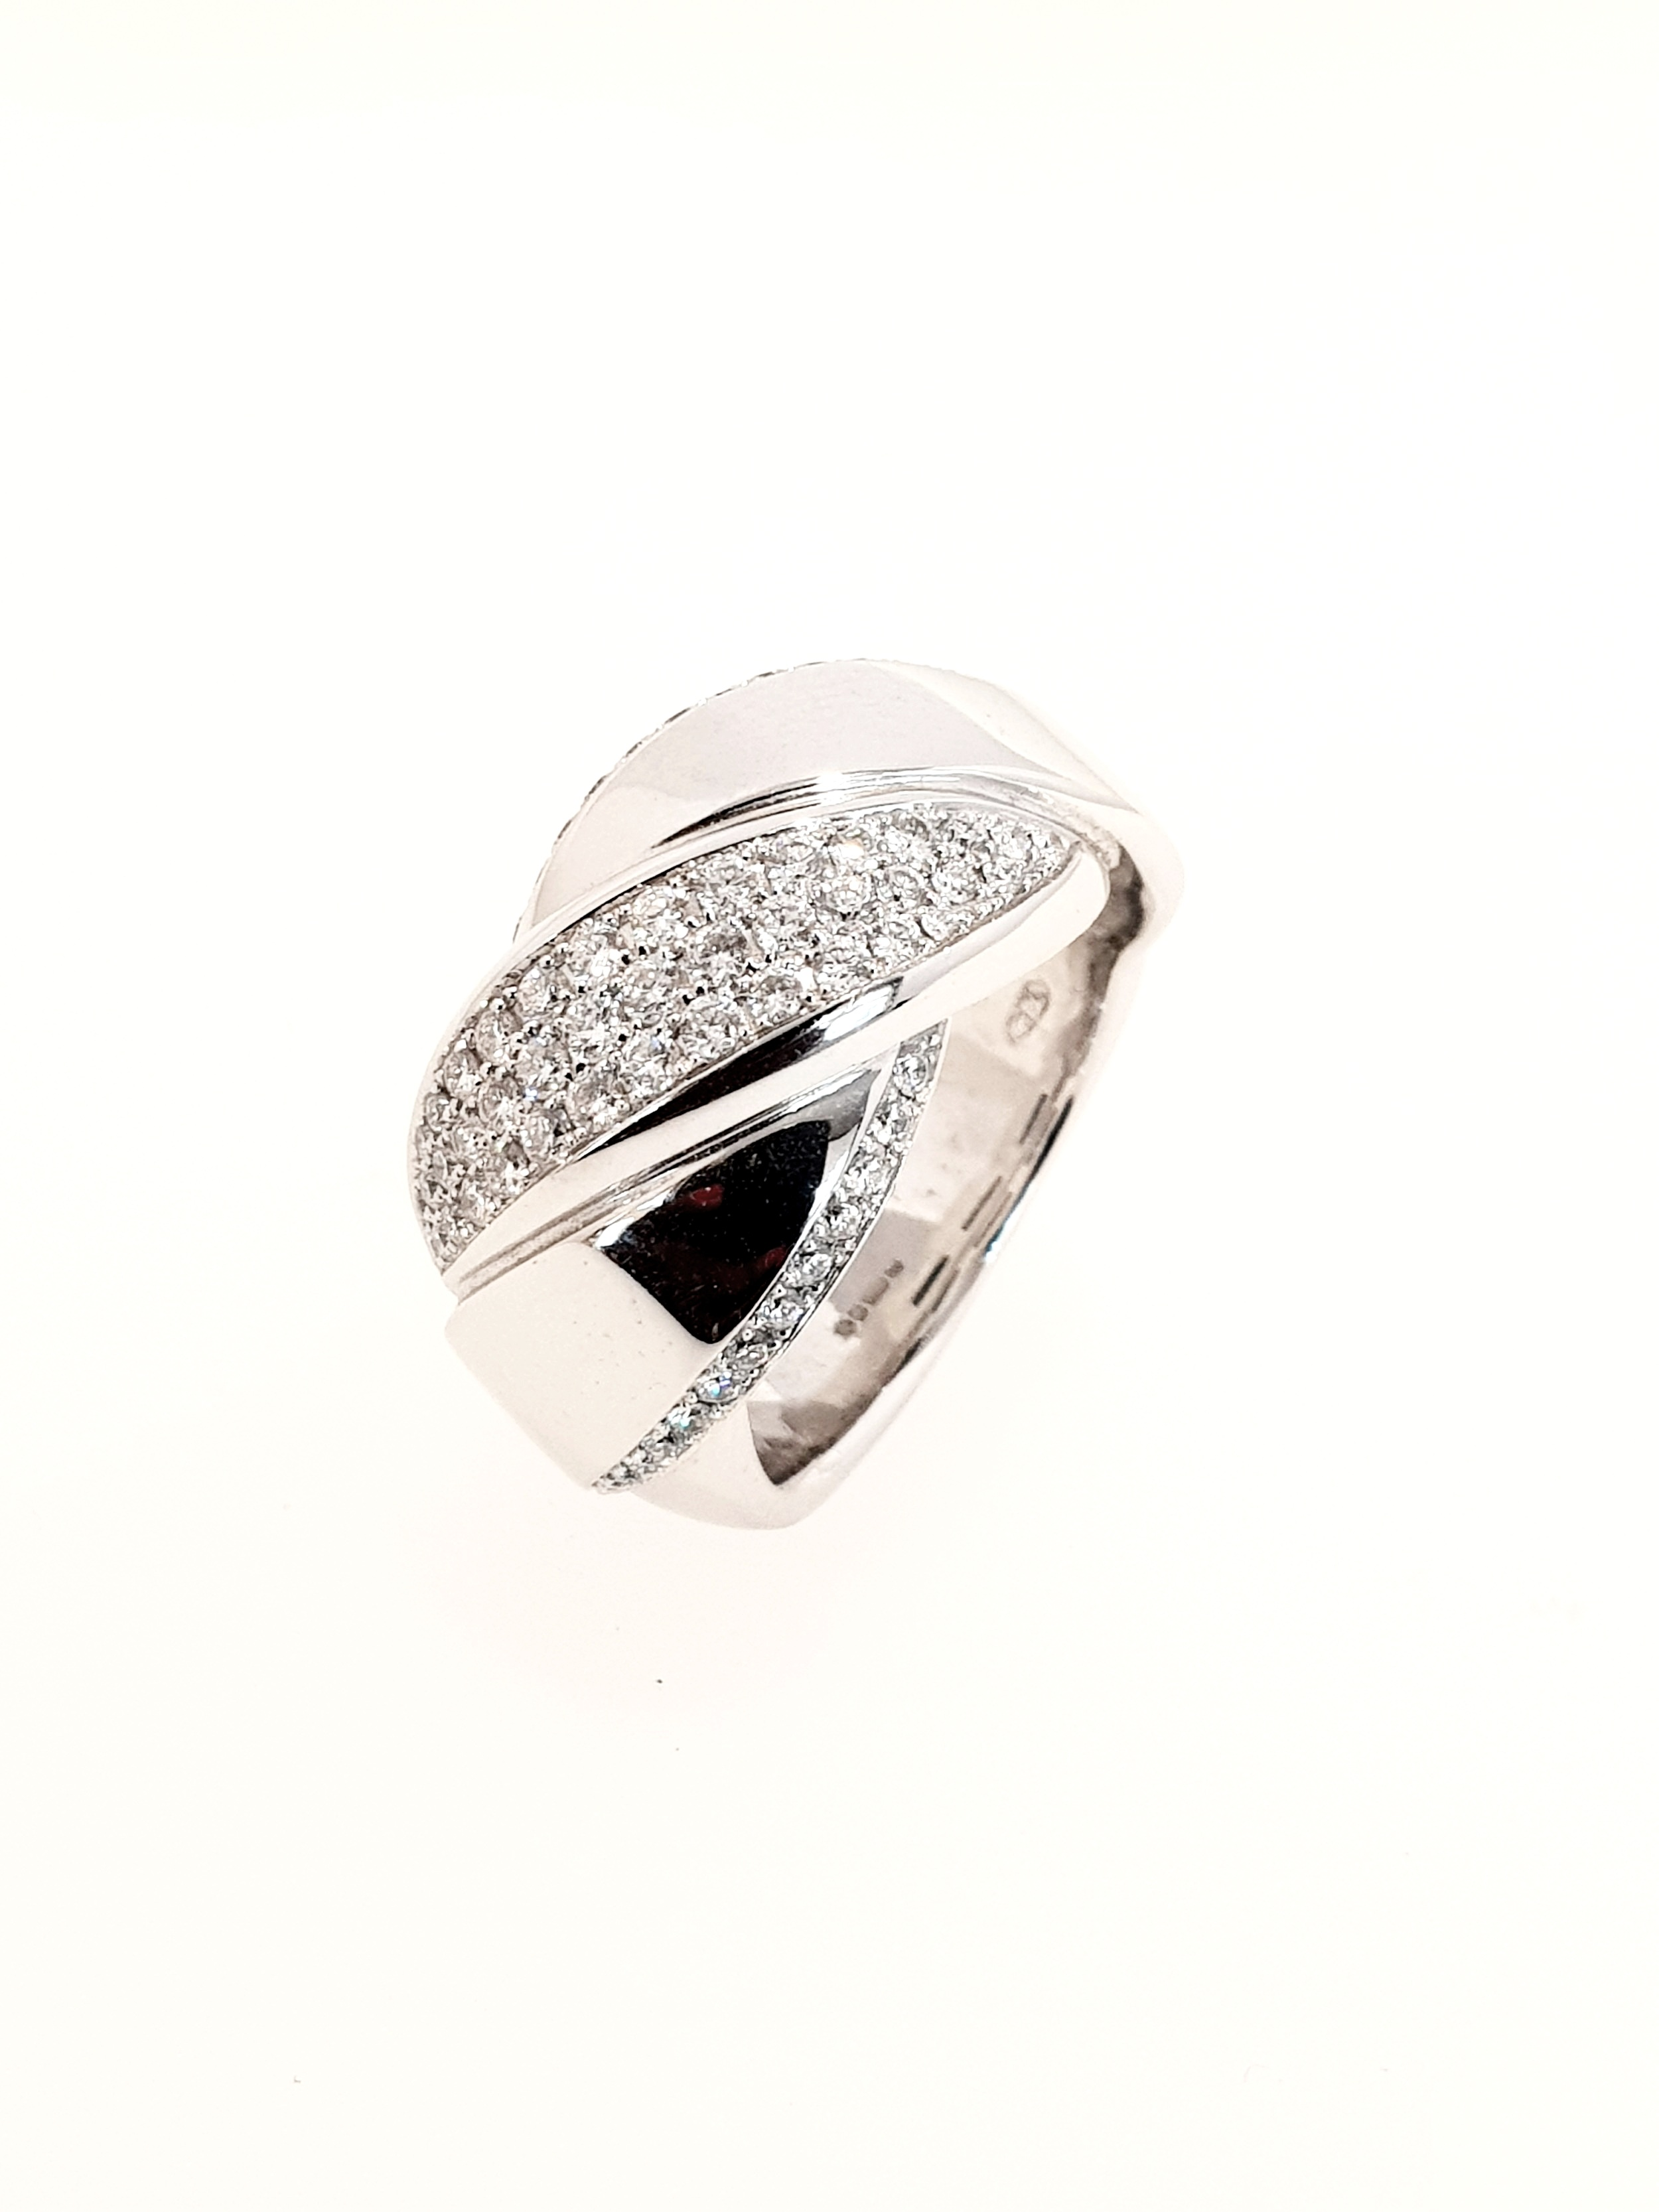 Cross Over Pave Set Ring  .61 Total Carat Weight  Stock Code: G1867  £2900